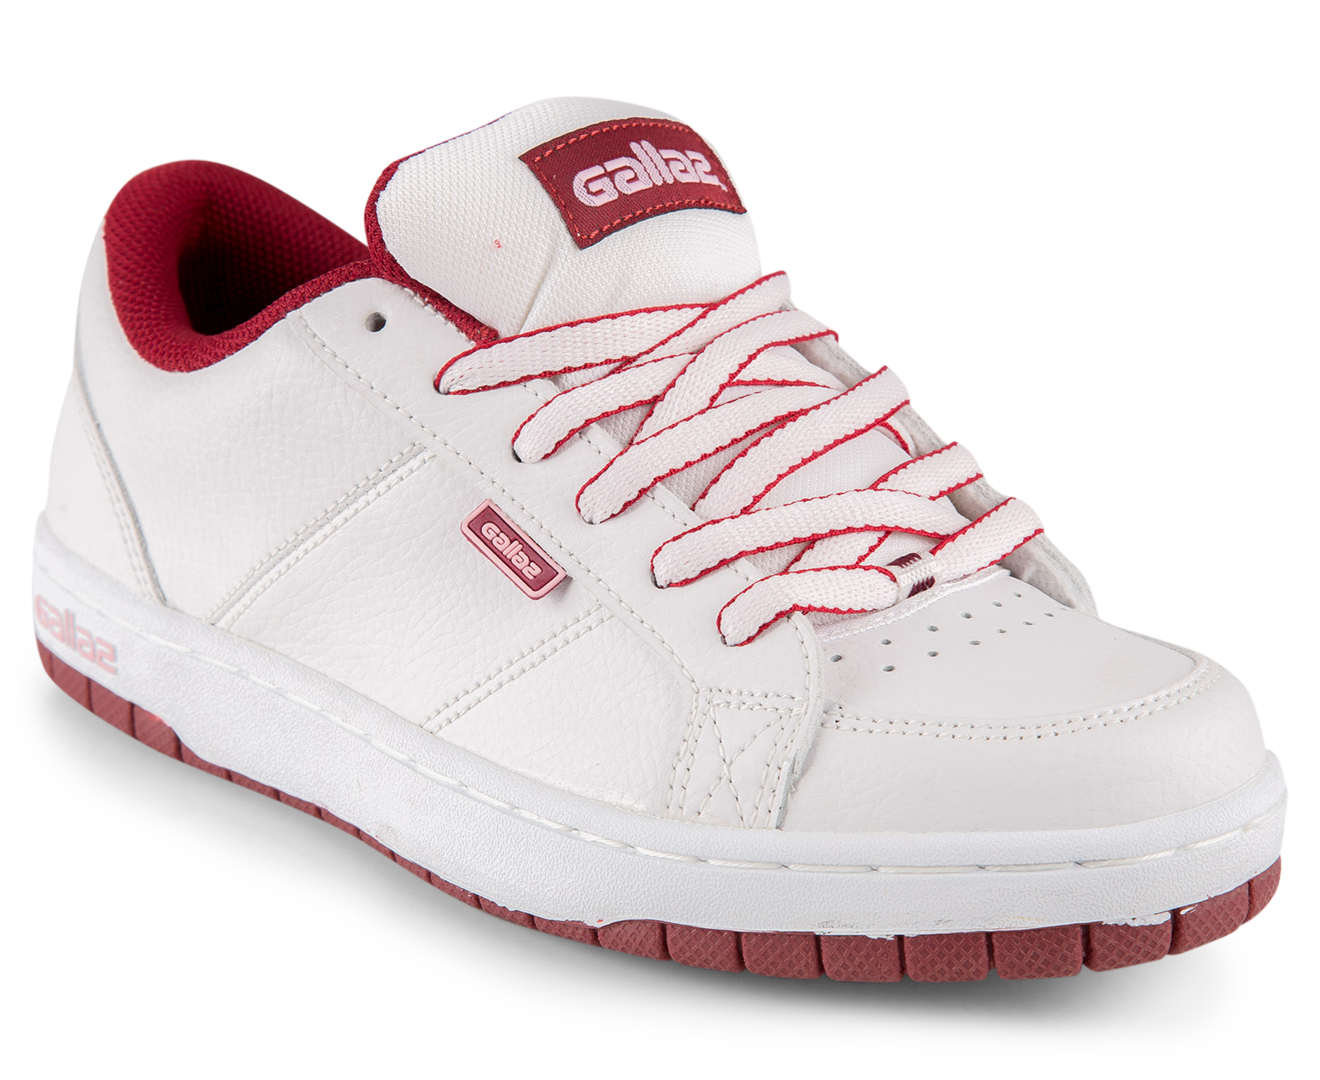 Gallaz Shoes Online